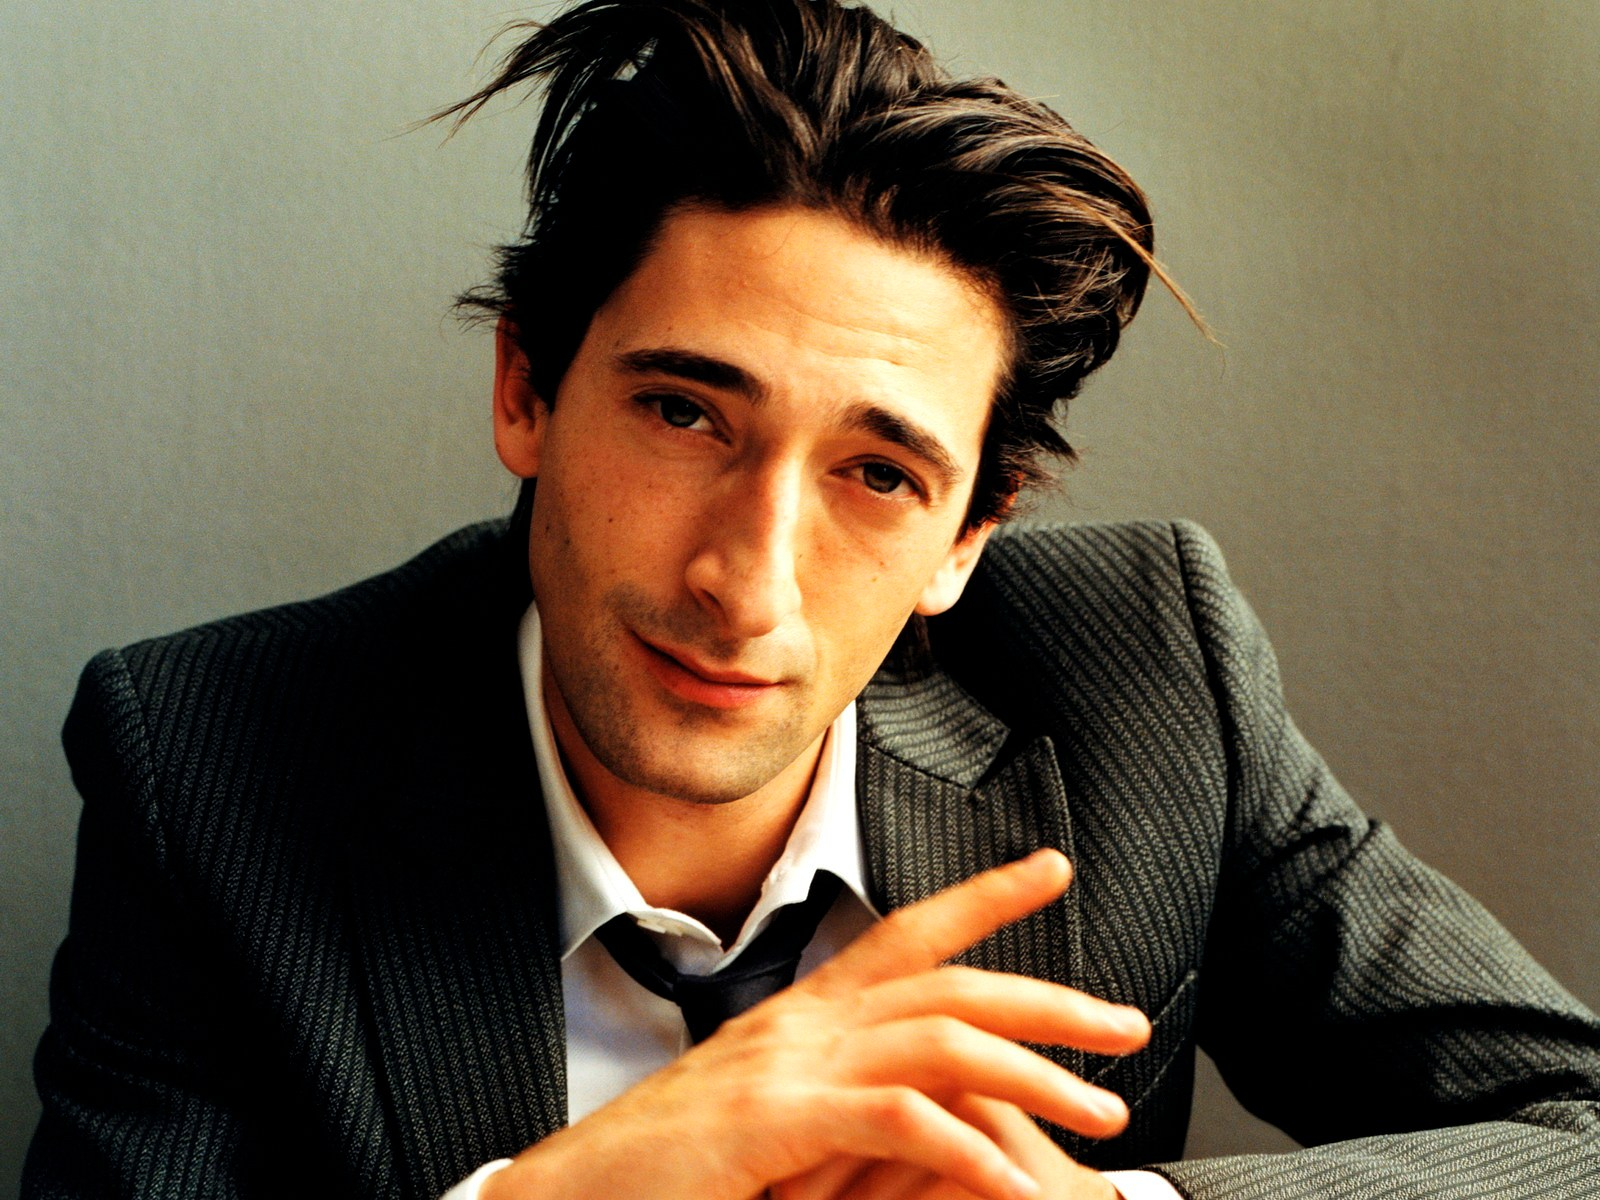 Adrien Brody widescreen wallpapers